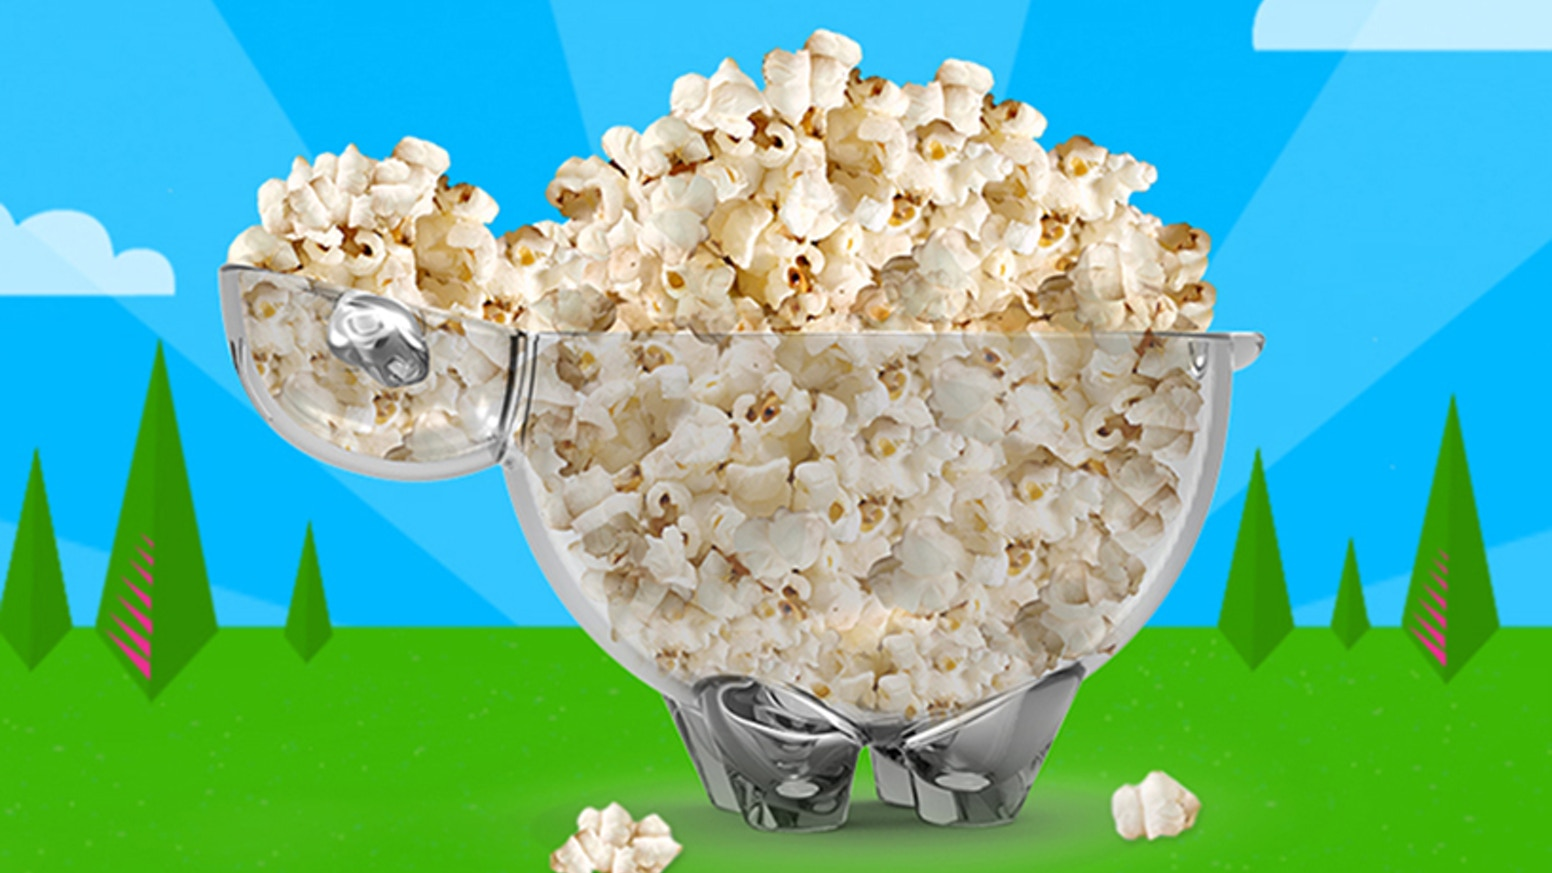 SHEEPOPCO is a premium popcorn bowl that will make your popcorn time much more fun!